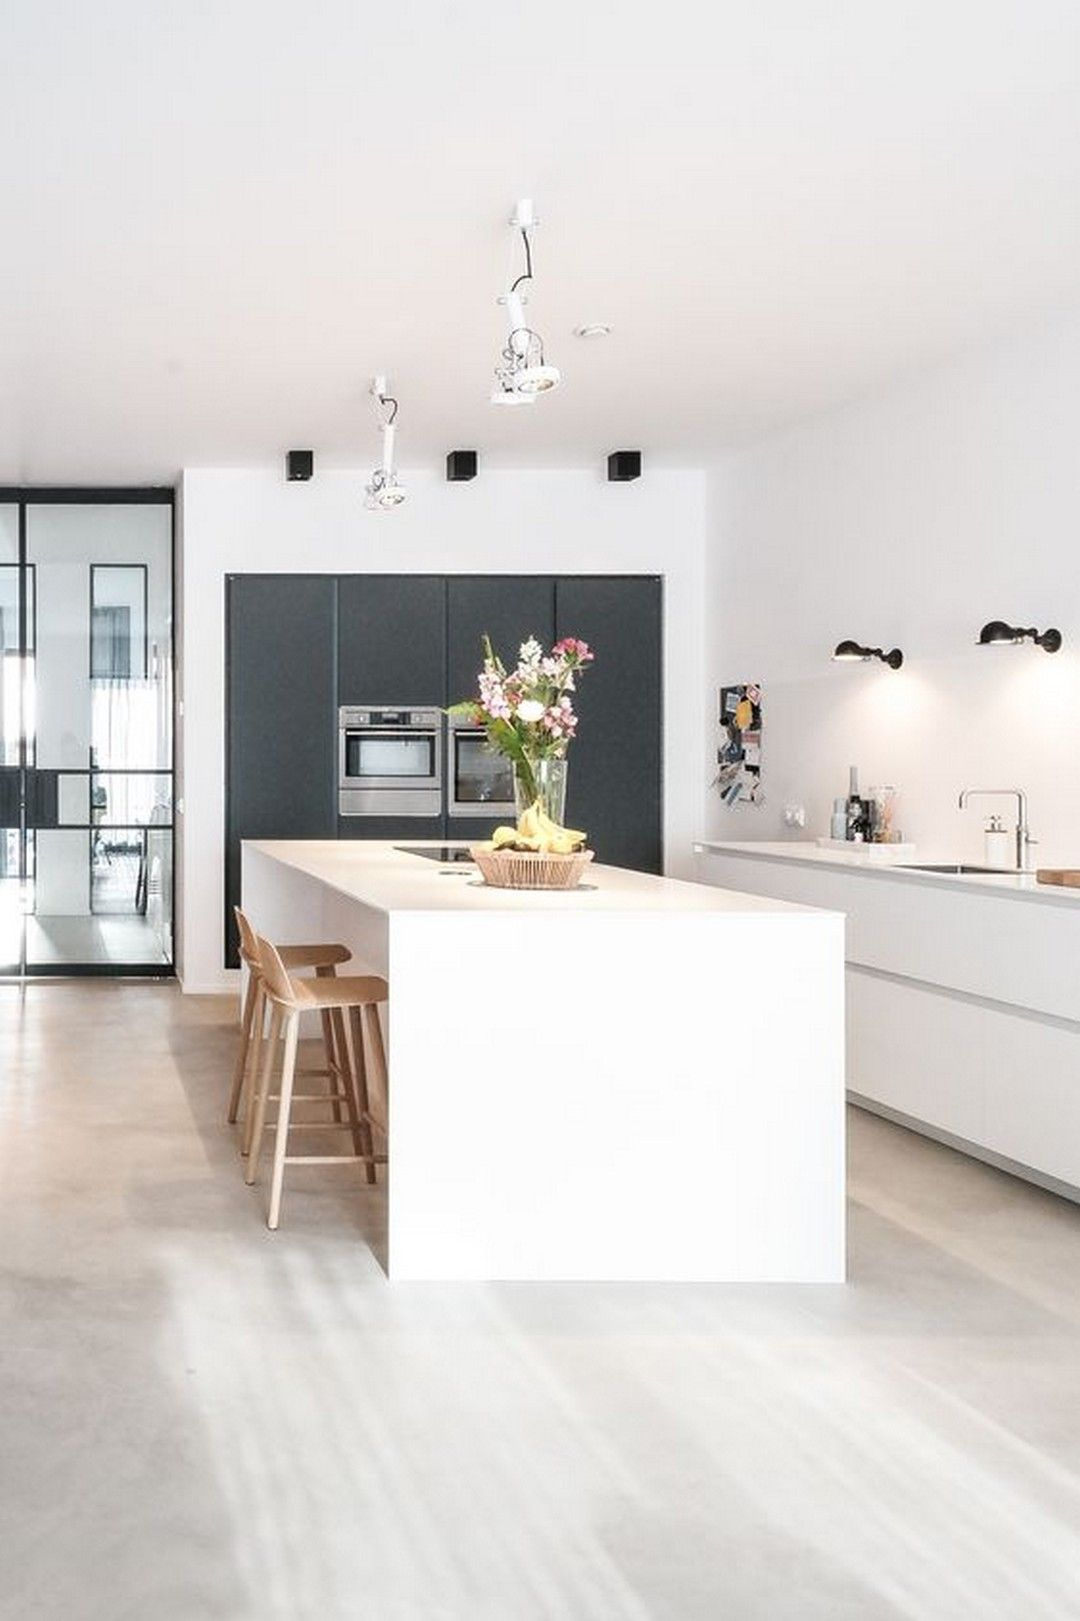 Modern Minimalist Kitchens That Will Make You Fall in Love